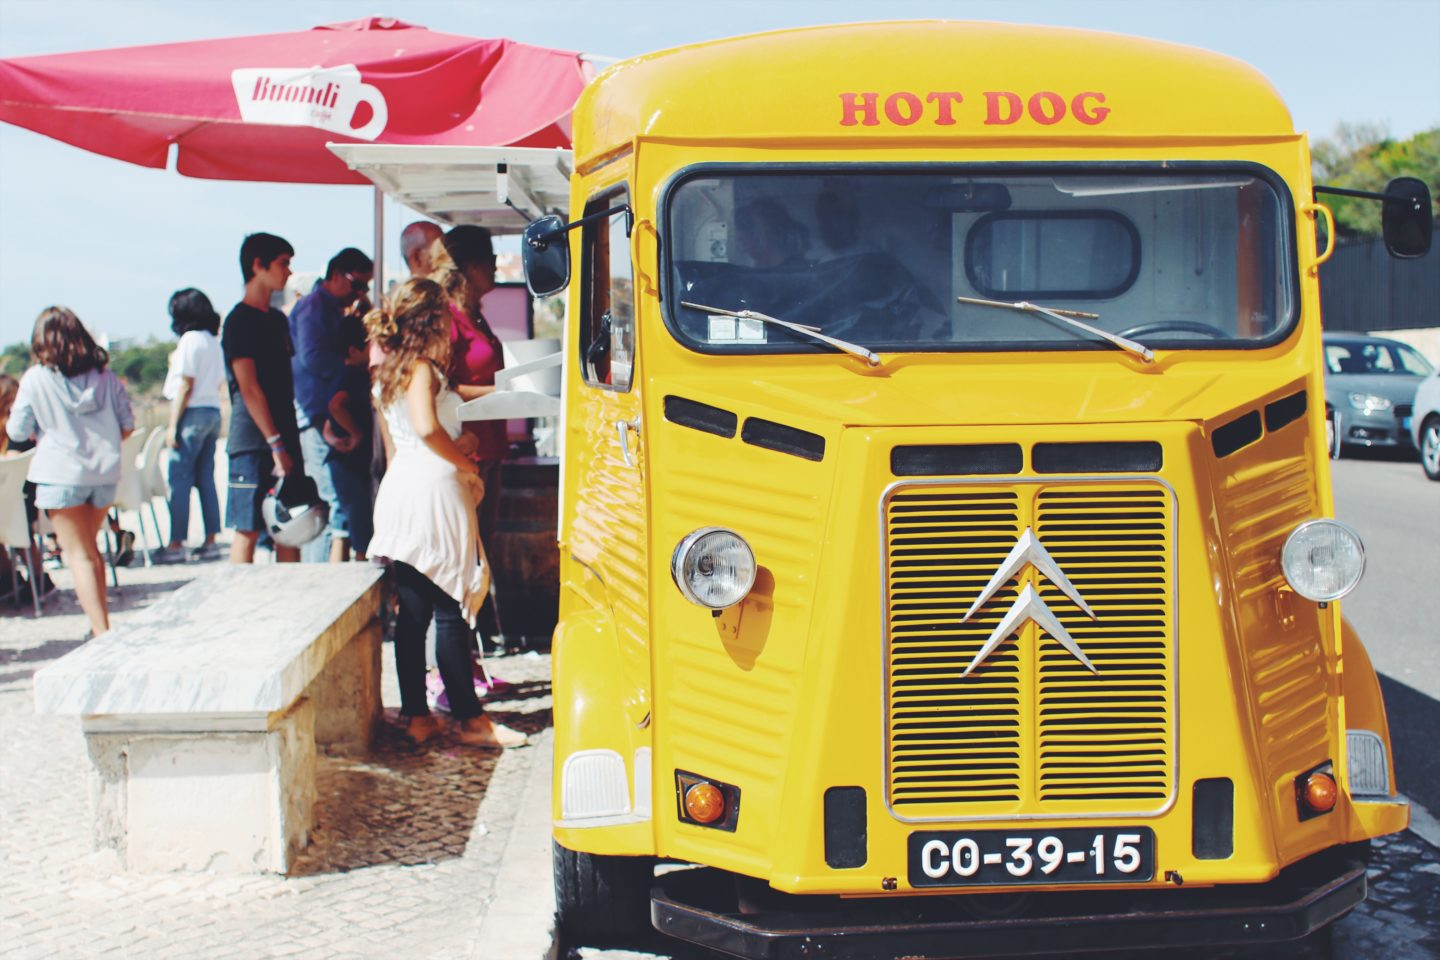 Top 4 Places To Eat in Cascais, Portugal - Hot Dogs at Hot Dogs Cascais food truck - by thecasualfree.com